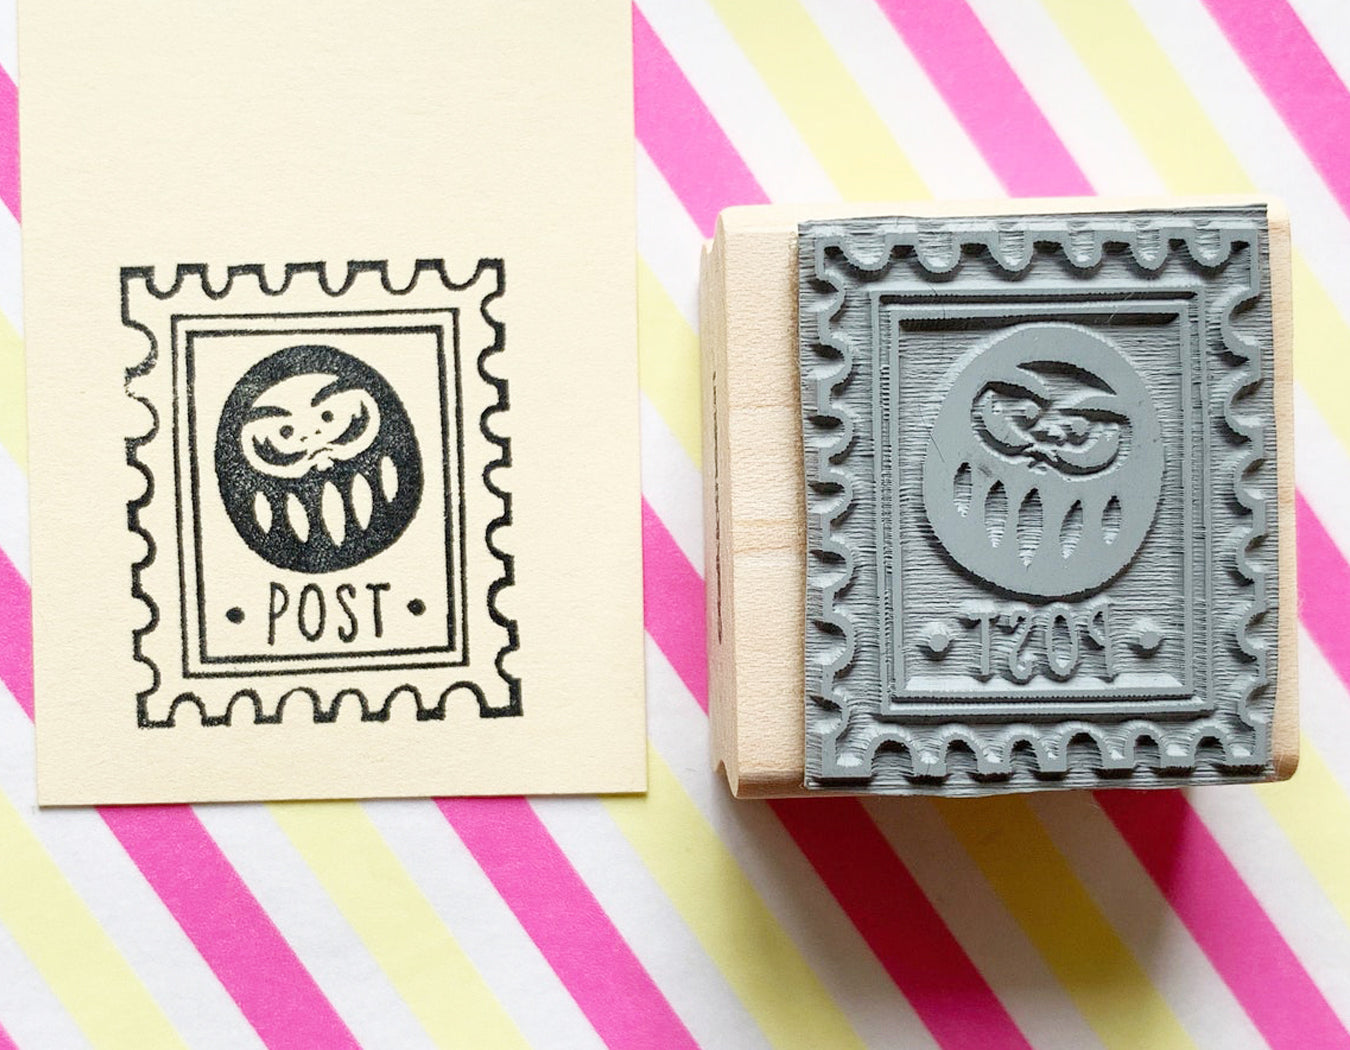 daruma doll stamp | postage stamp | daruma post stamp | japanese rubber stamp for snail mail, card making, gift wrapping | LIMITED EDITION- TALK TO THE SUN